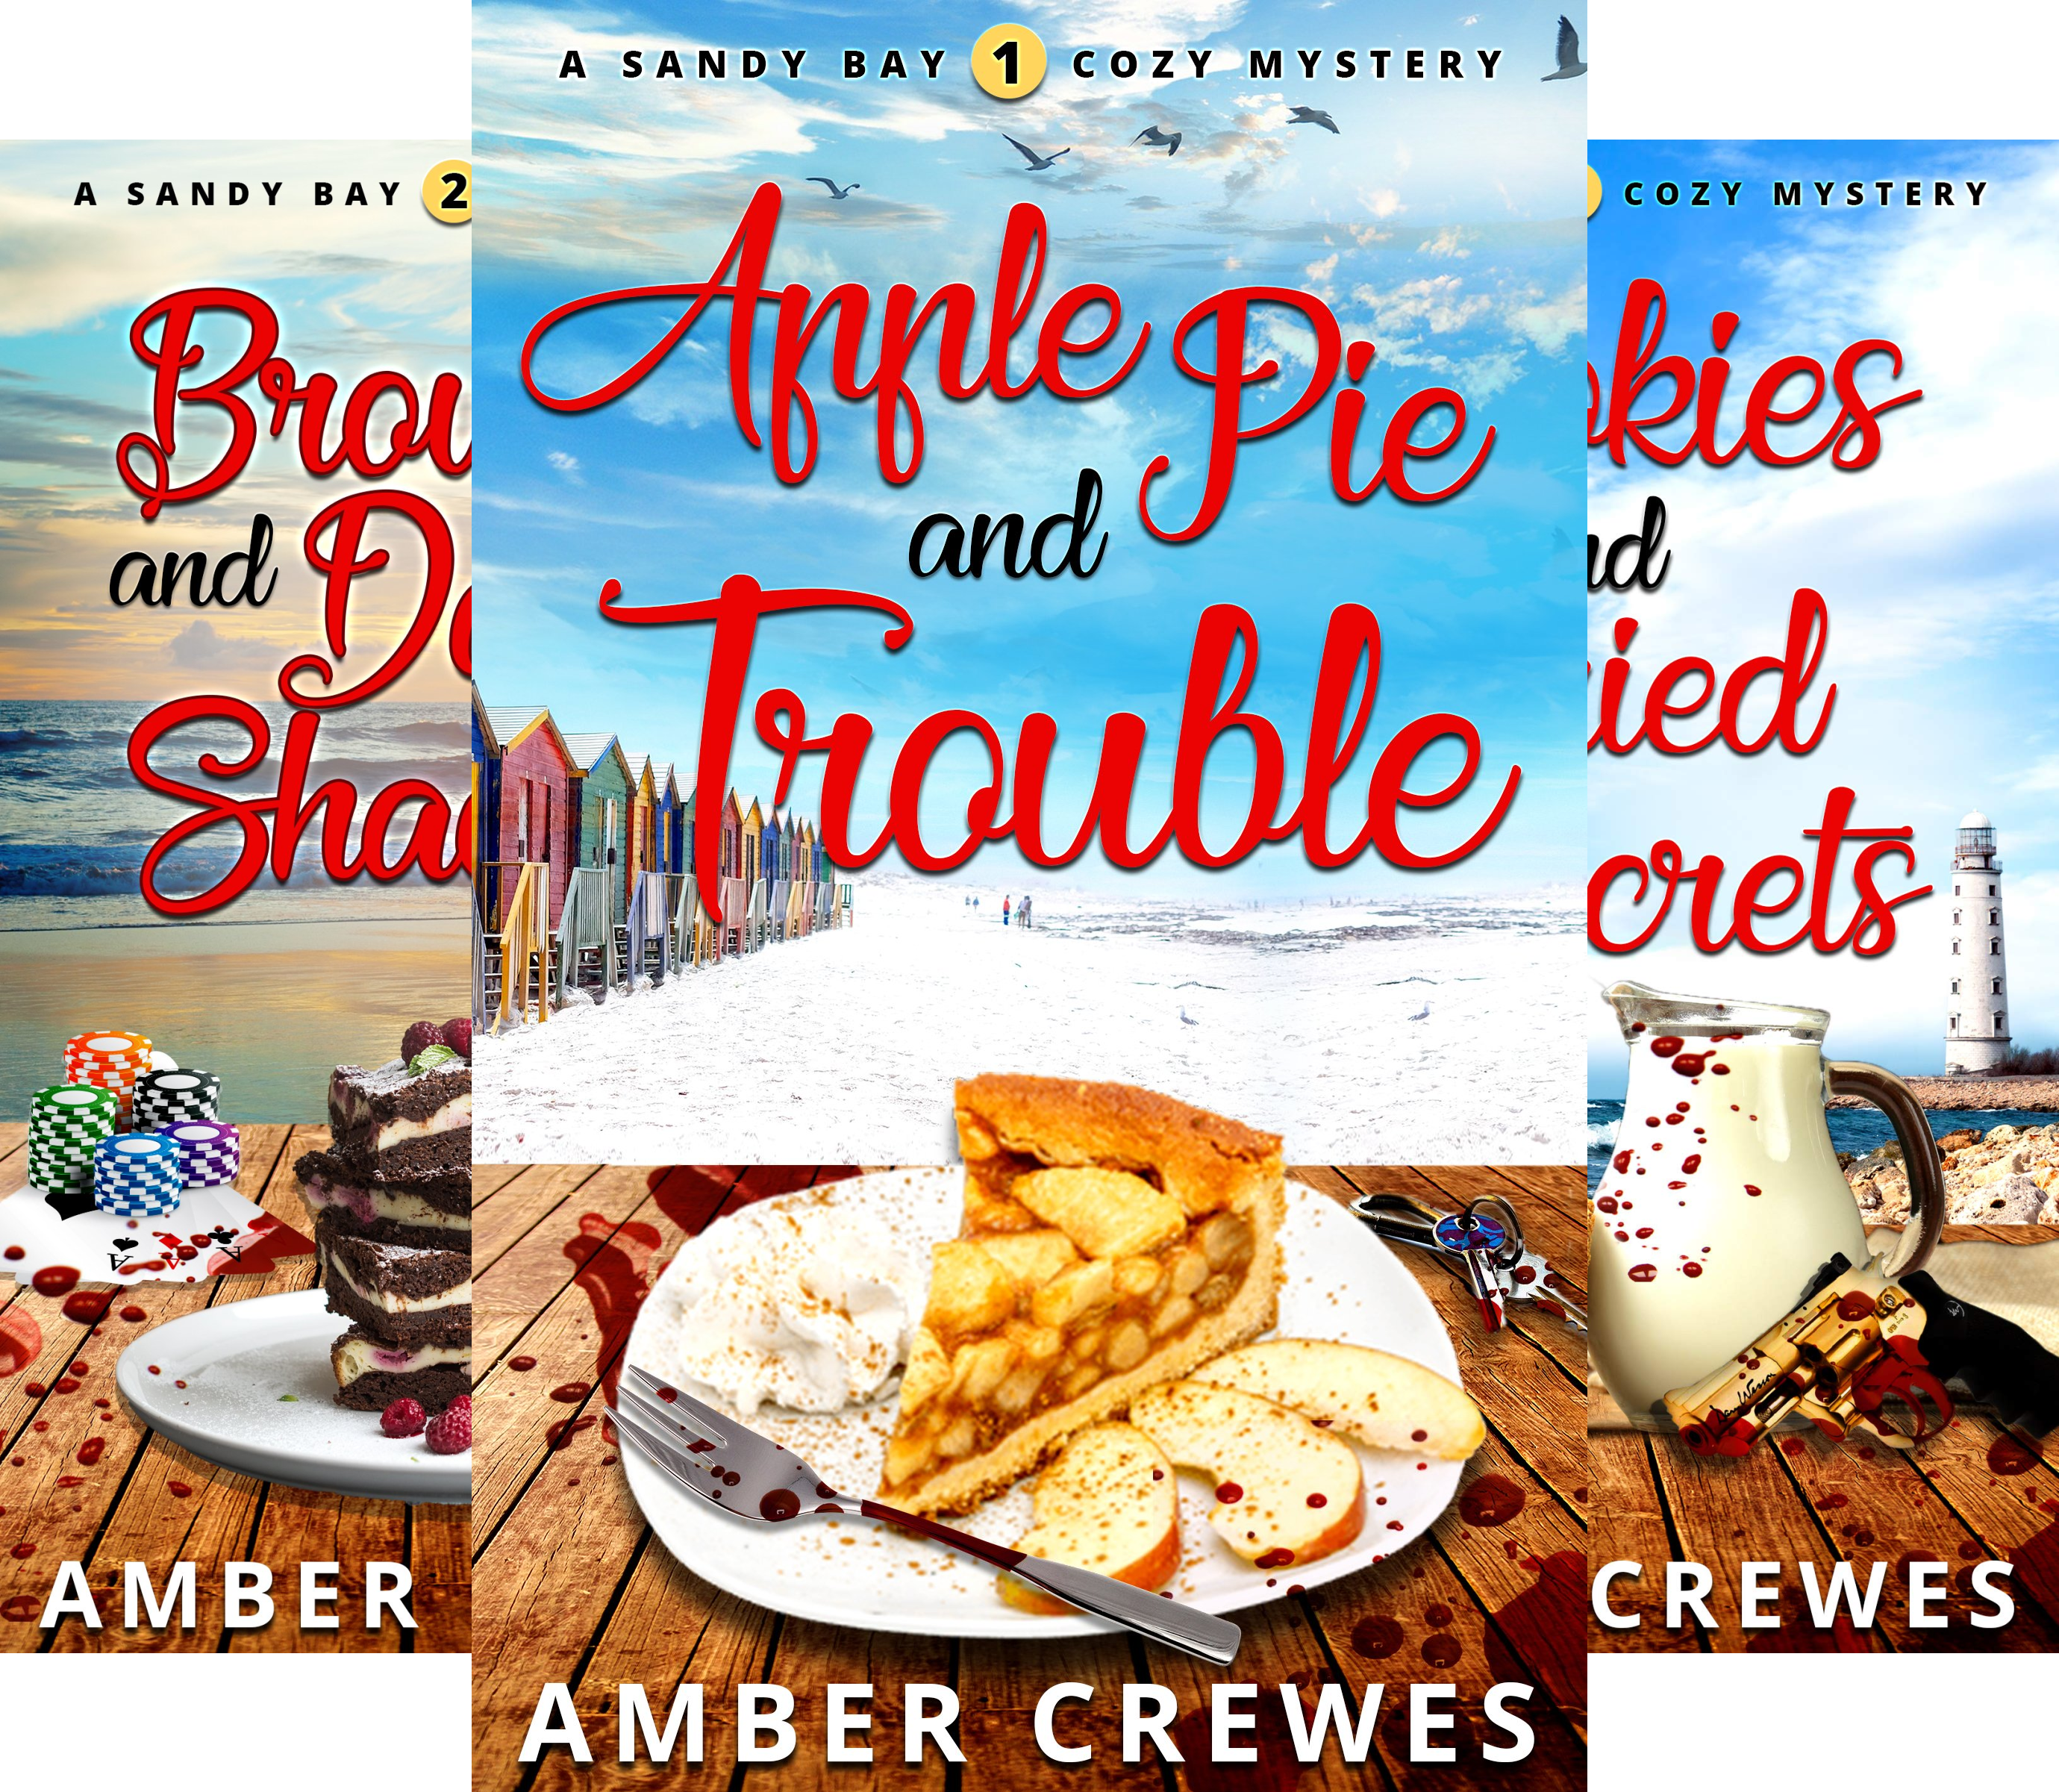 Sandy Bay Cozy Mystery (8 Book Series)